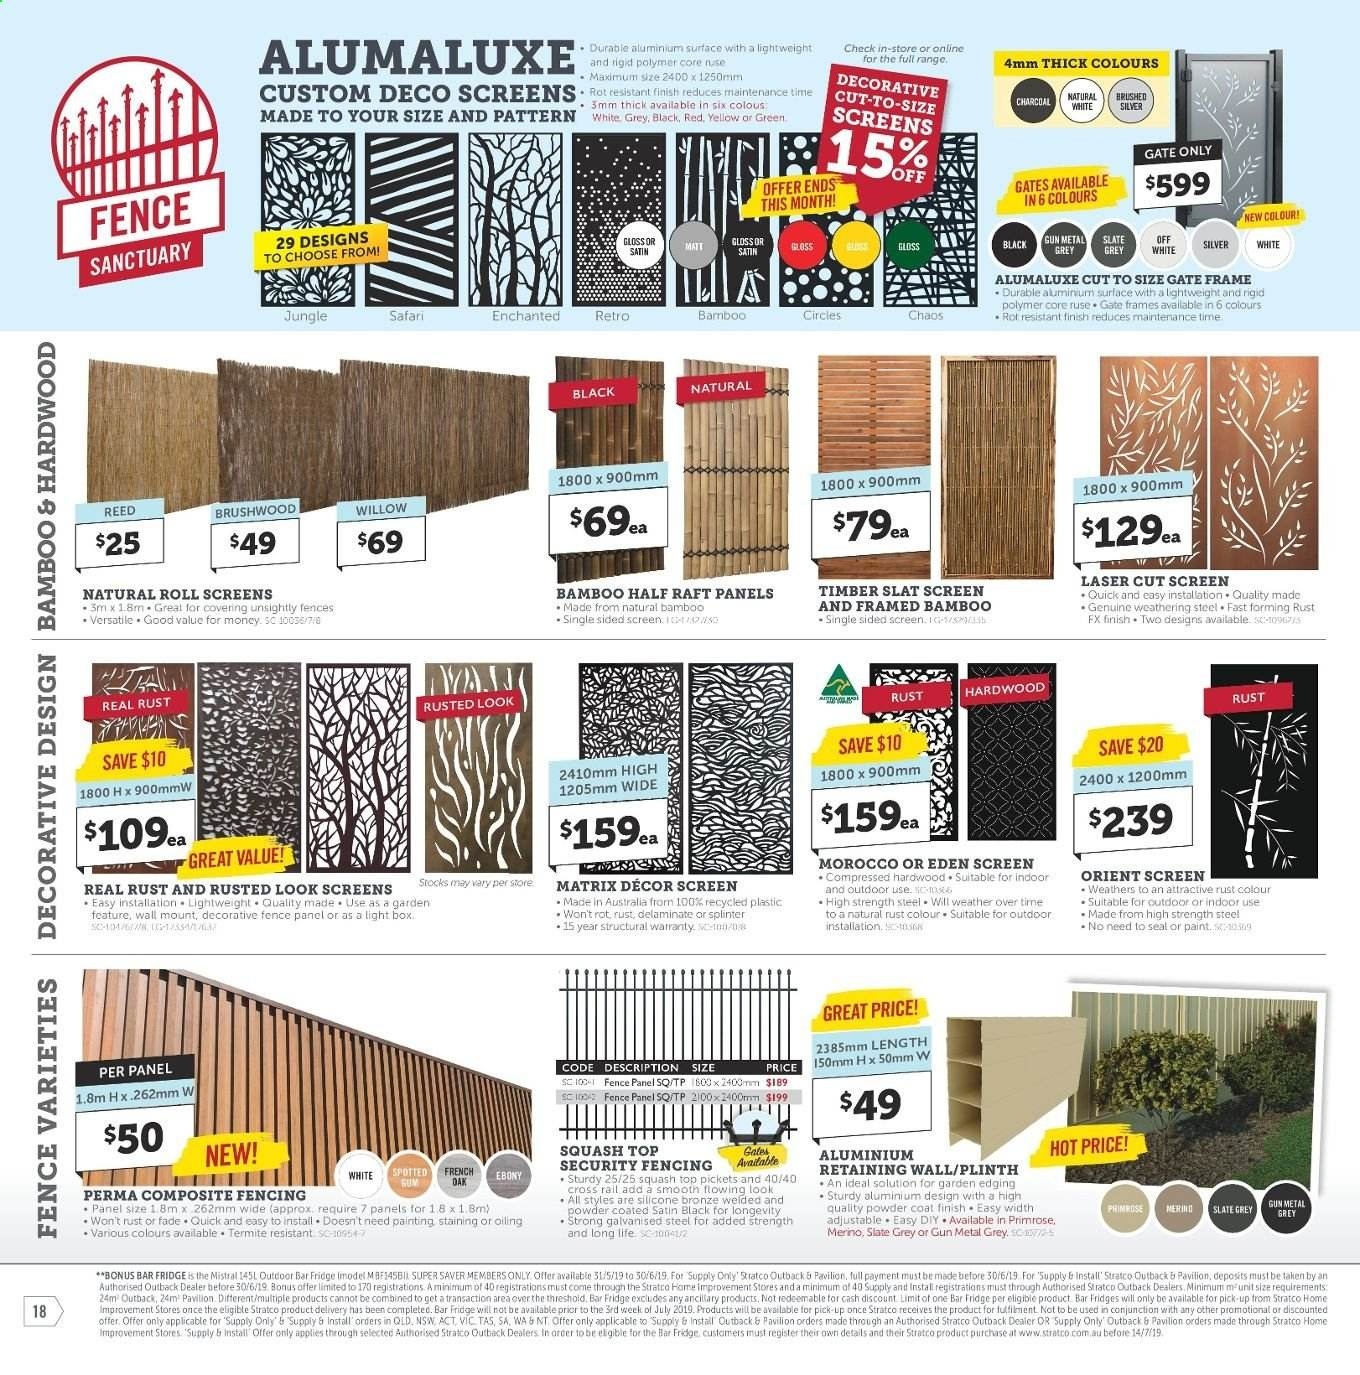 Stratco catalogue and weekly specials 31 5 2019 - 16 6 2019